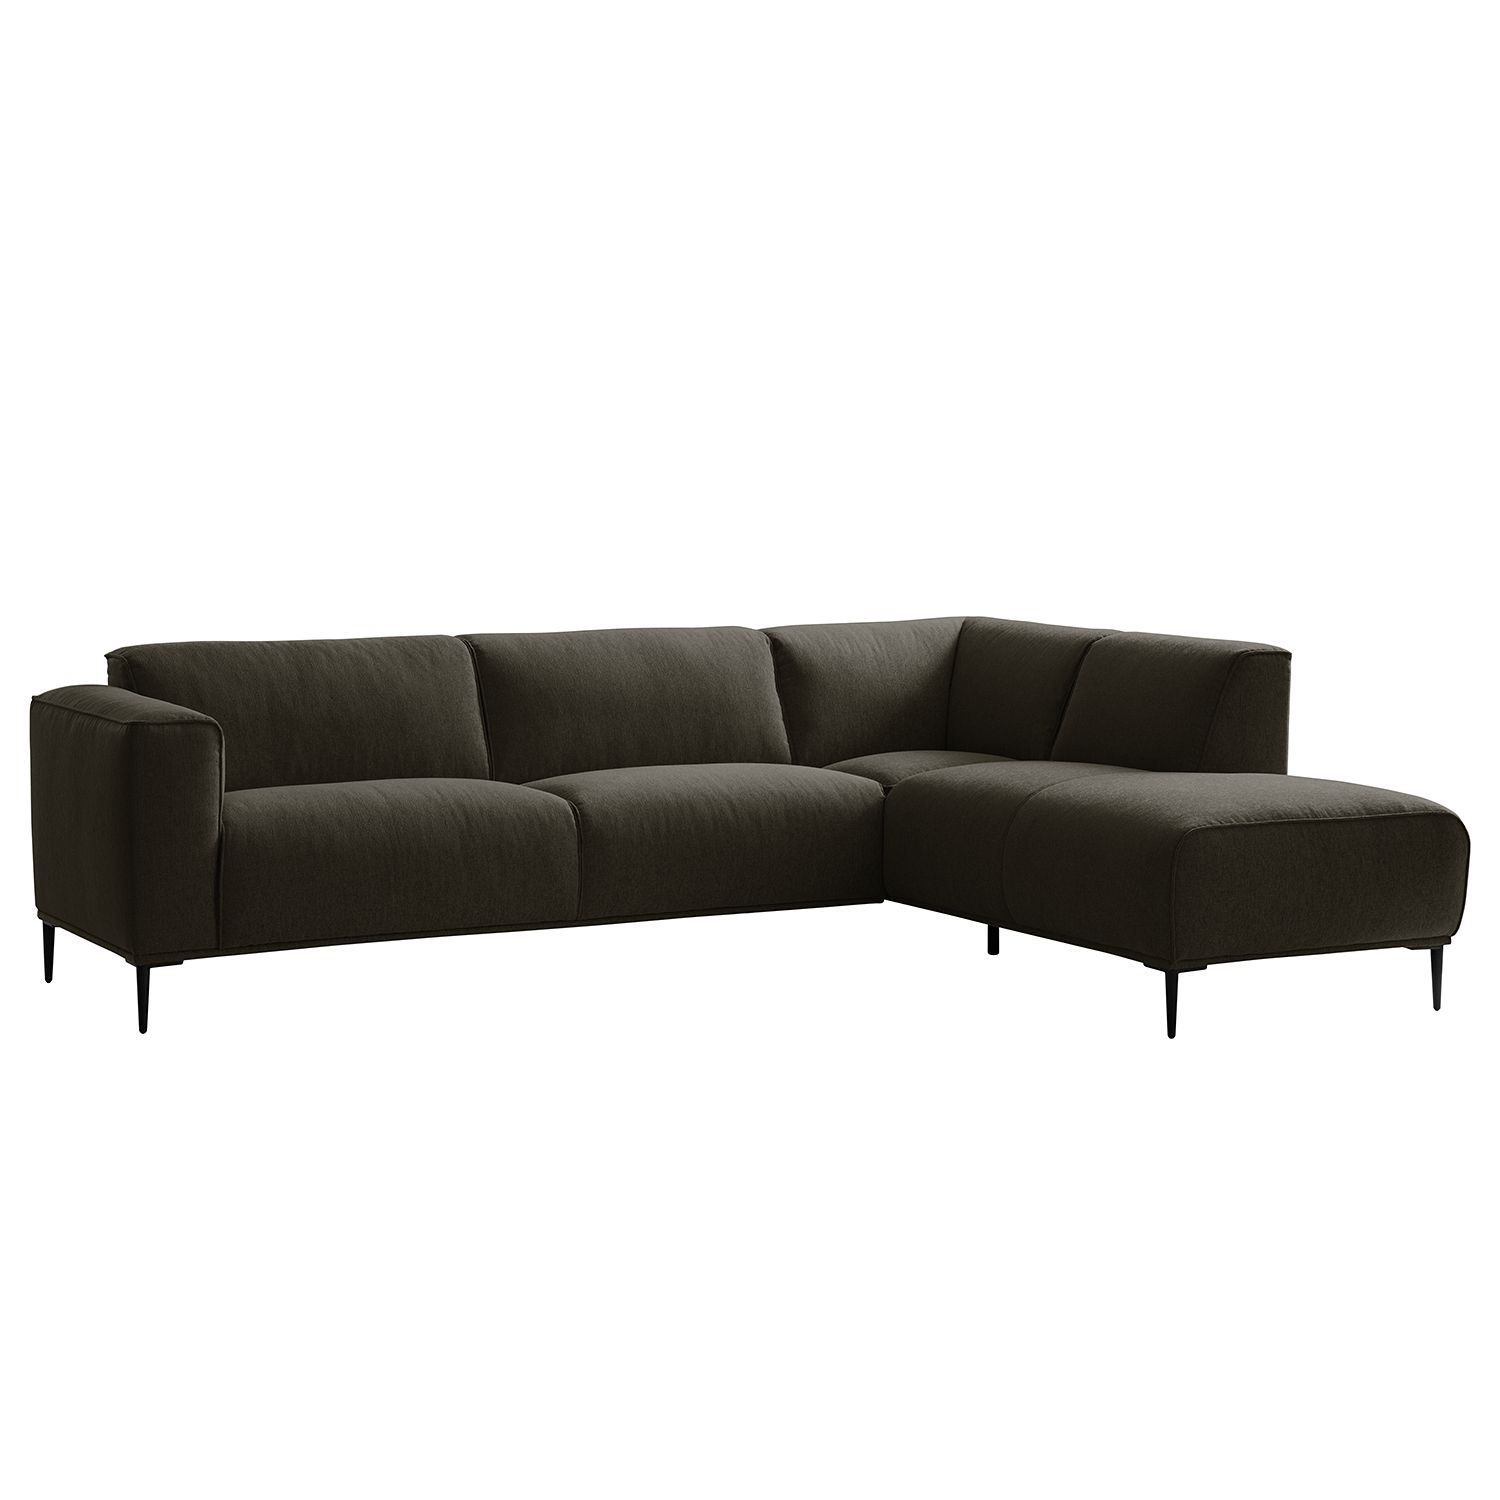 sofa bezug ecksofa mit ottomane sofabezug with sofa bezug ecksofa mit ottomane interesting. Black Bedroom Furniture Sets. Home Design Ideas